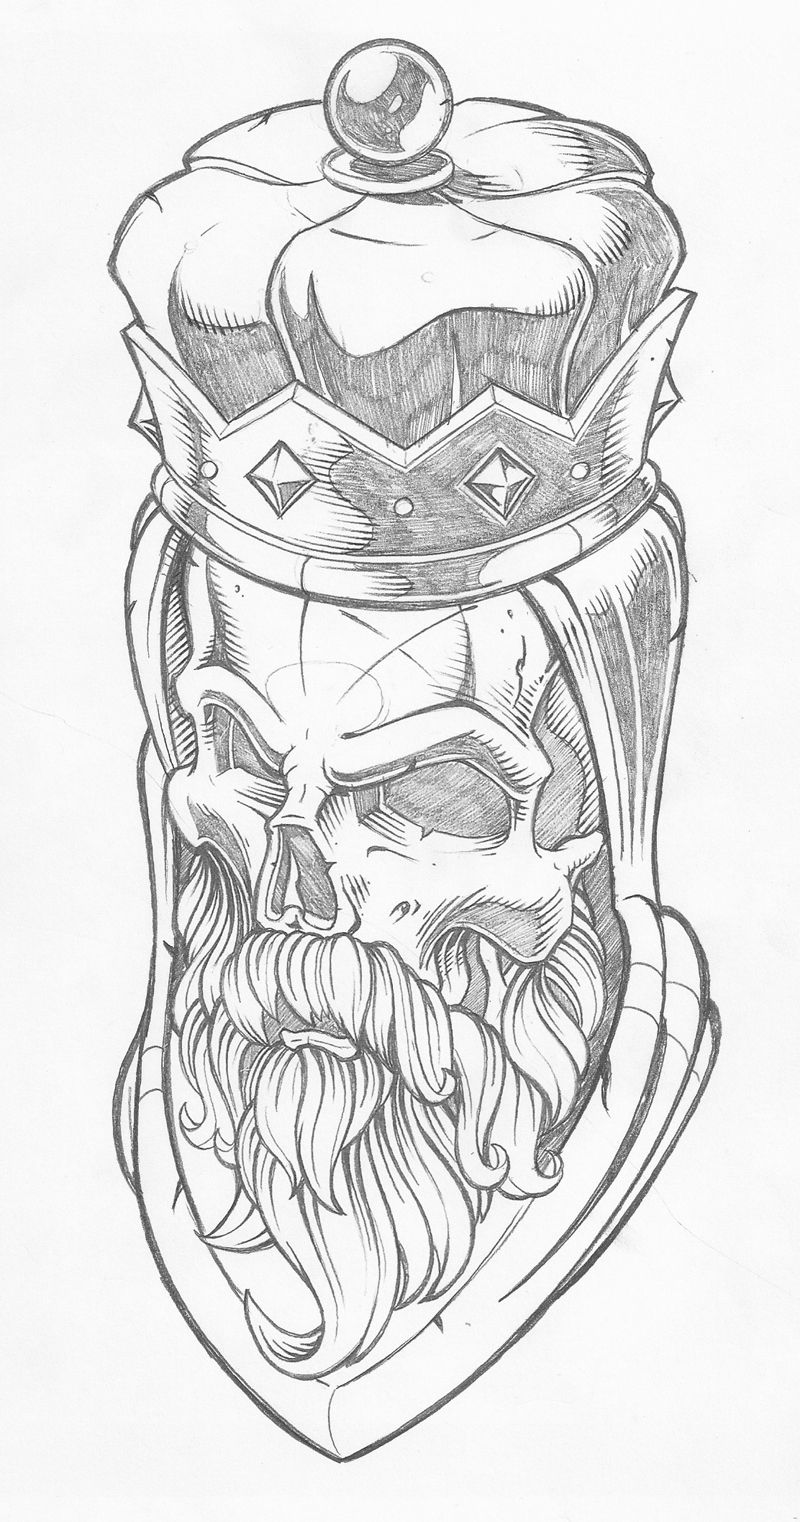 Black king tattoo ideas kingg  paint the air  pinterest  content tattoo and check